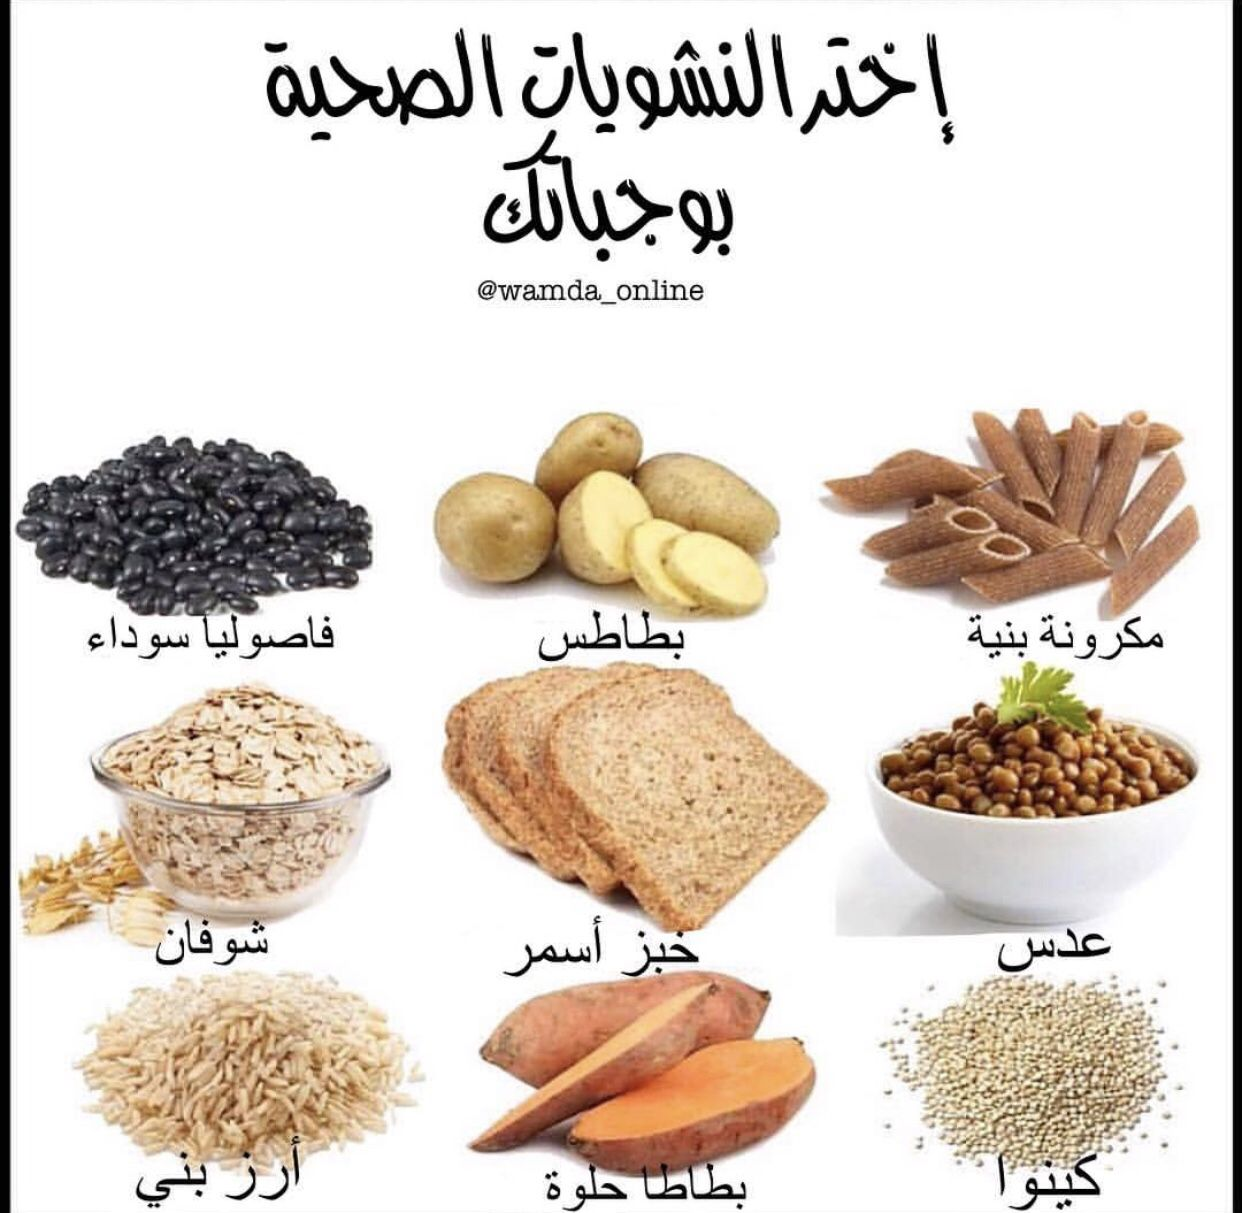 Pin By Mohamed Ouf On لإنقاص الوزن Health Facts Food Health Food Health Fitness Nutrition